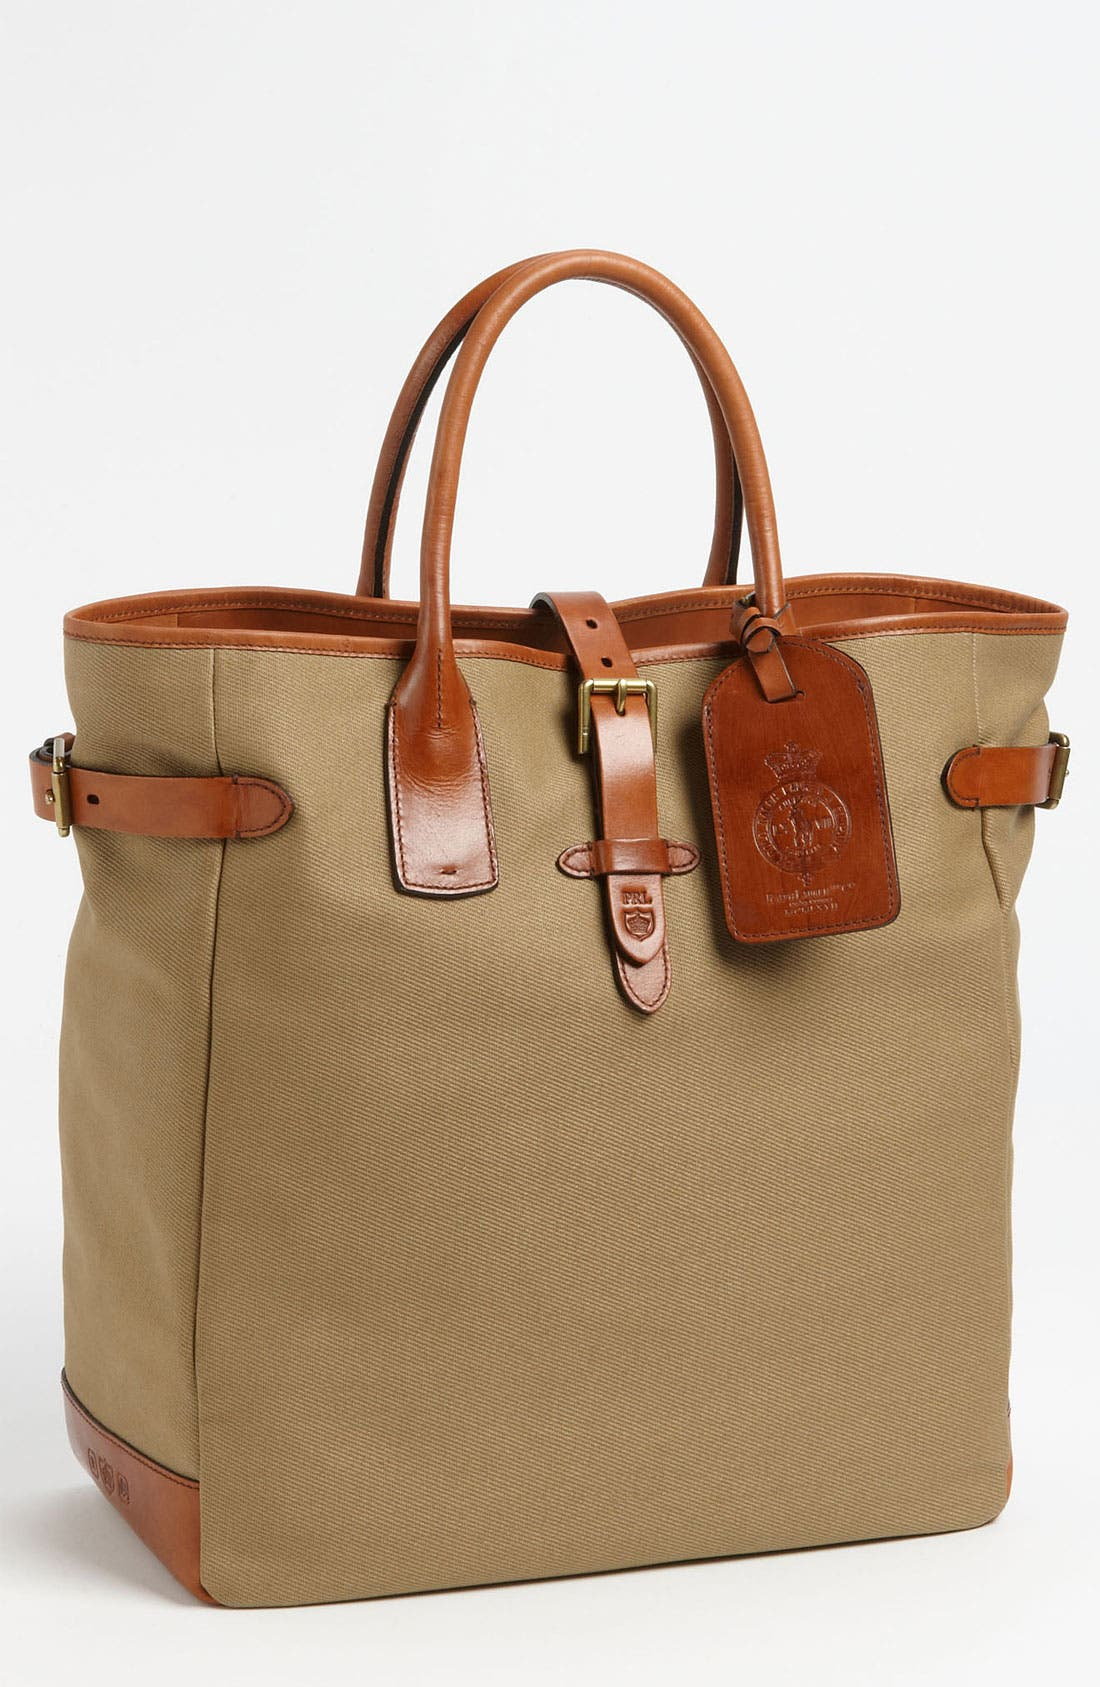 Alternate Image 1 Selected - Polo Ralph Lauren Canvas Tote Bag